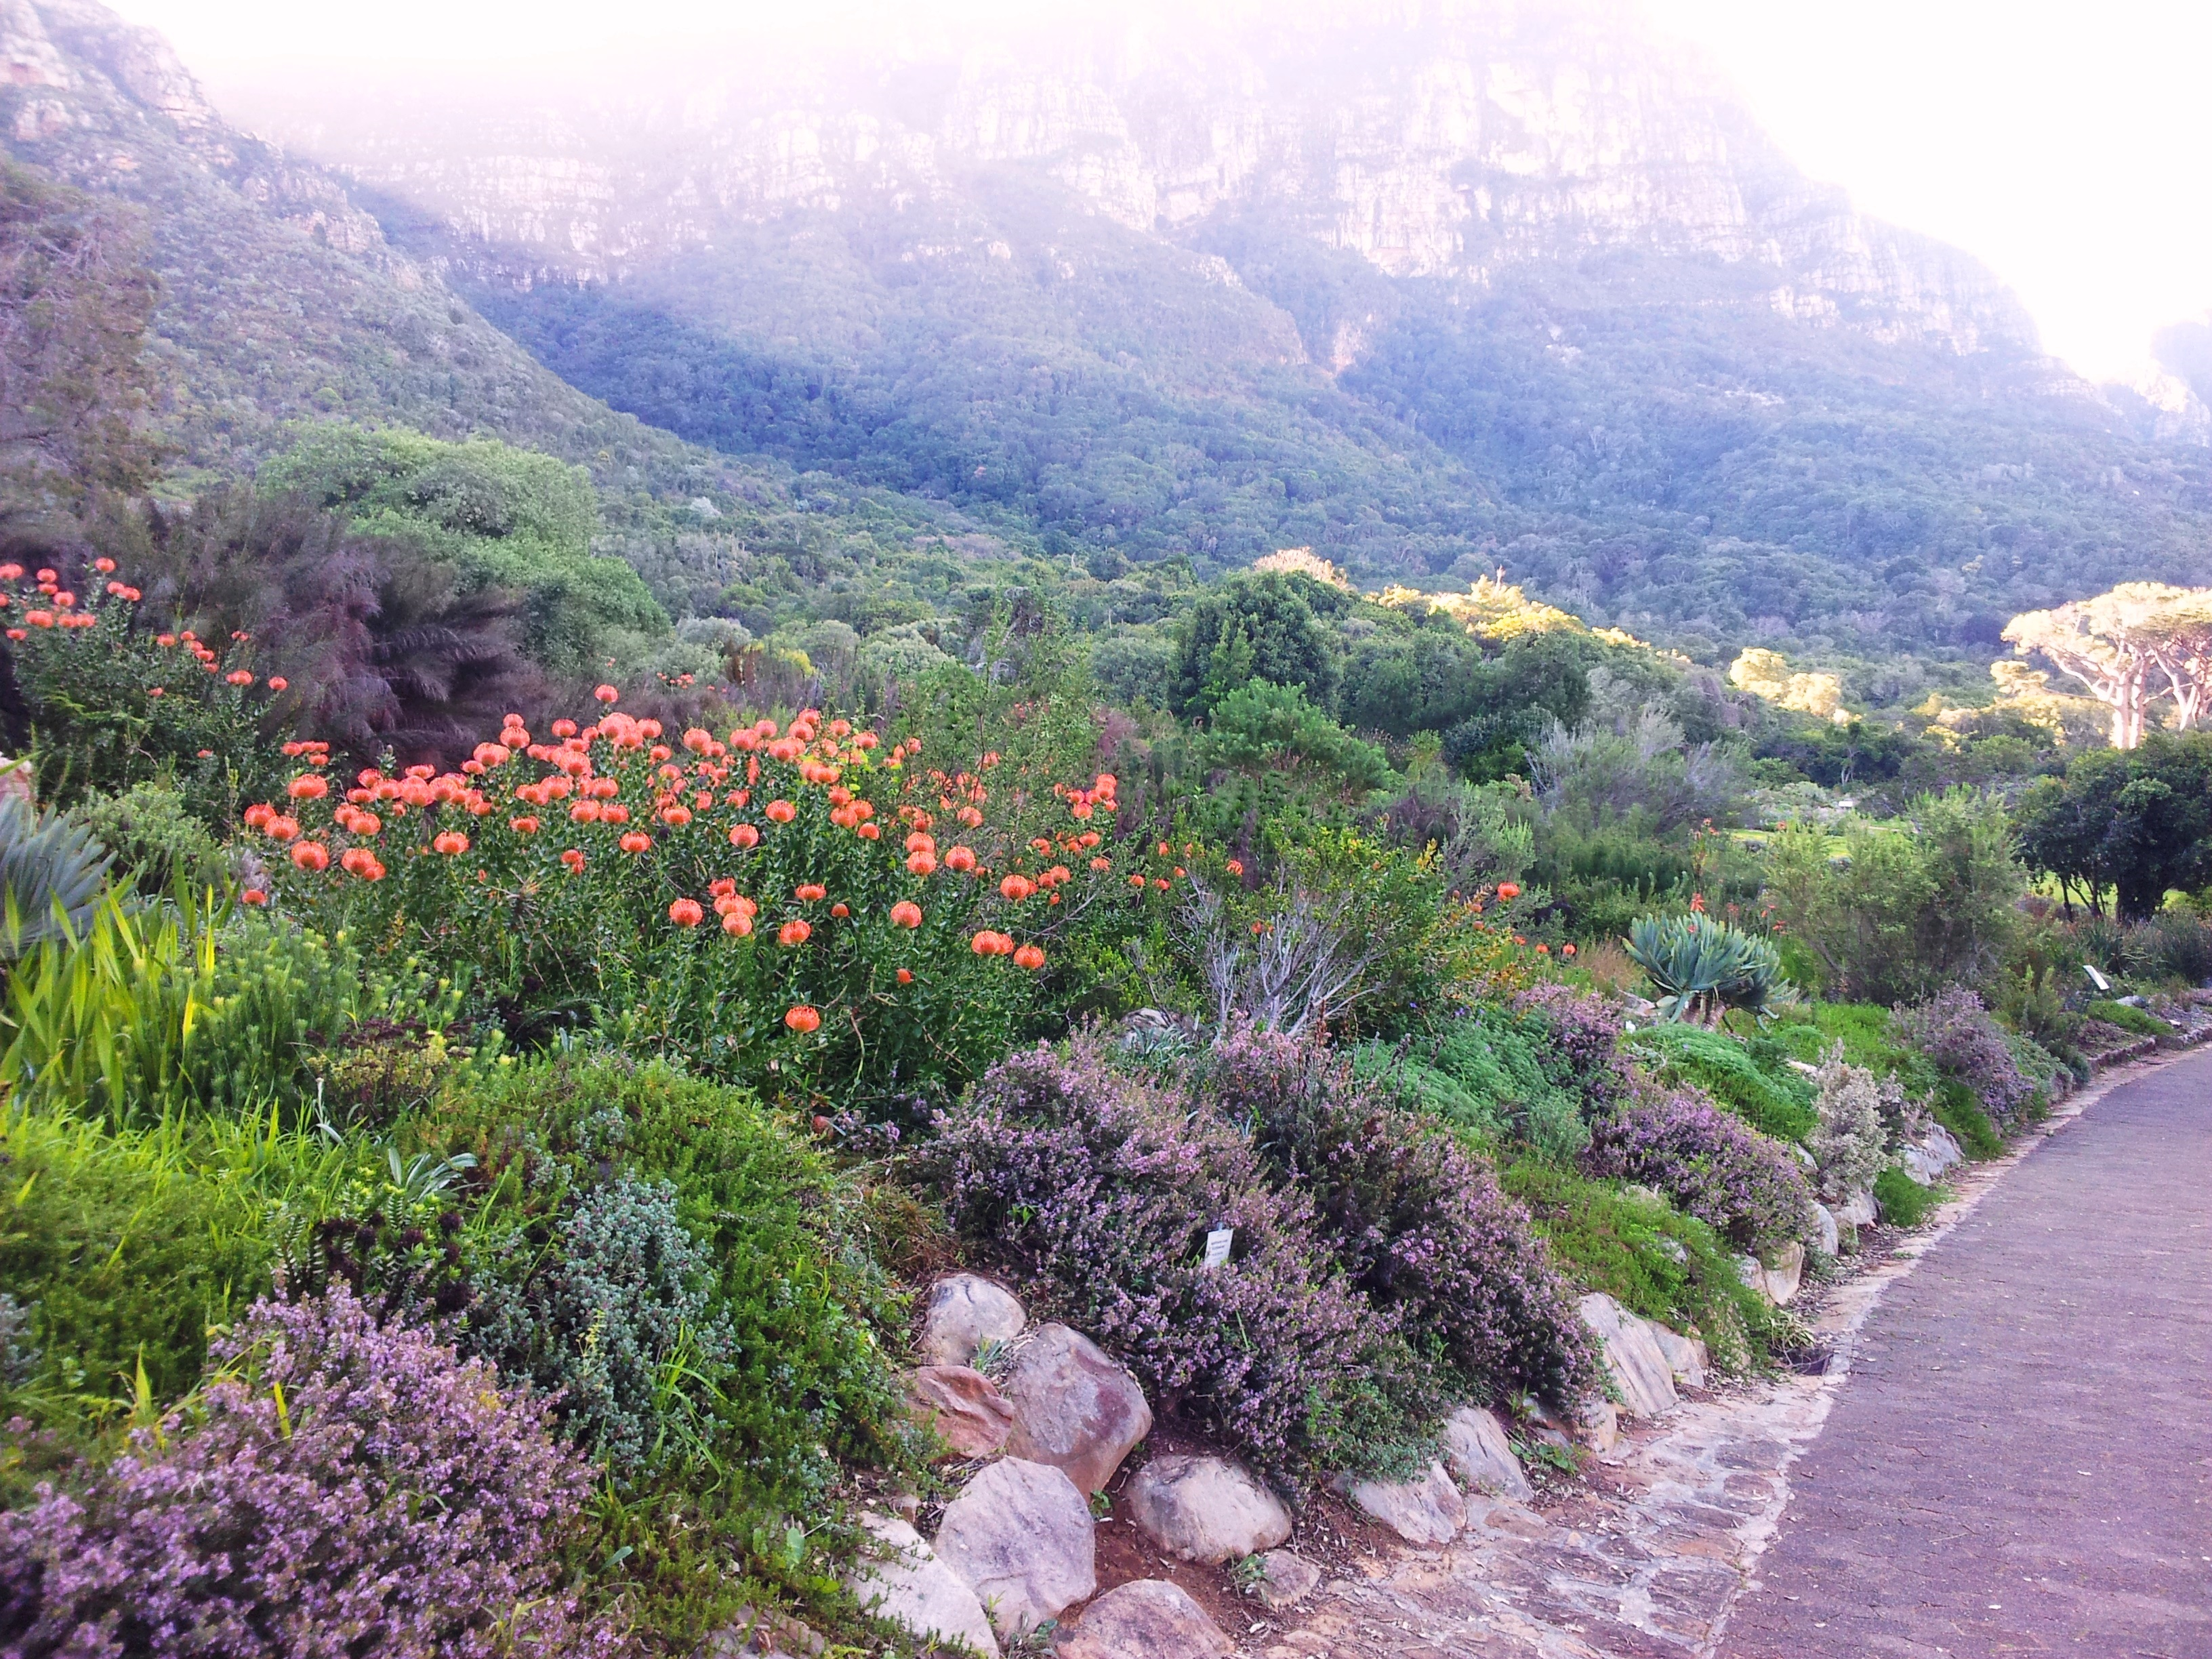 kirstenbosch features flora indigenous to the cape region such as sugarbushes pincushions and